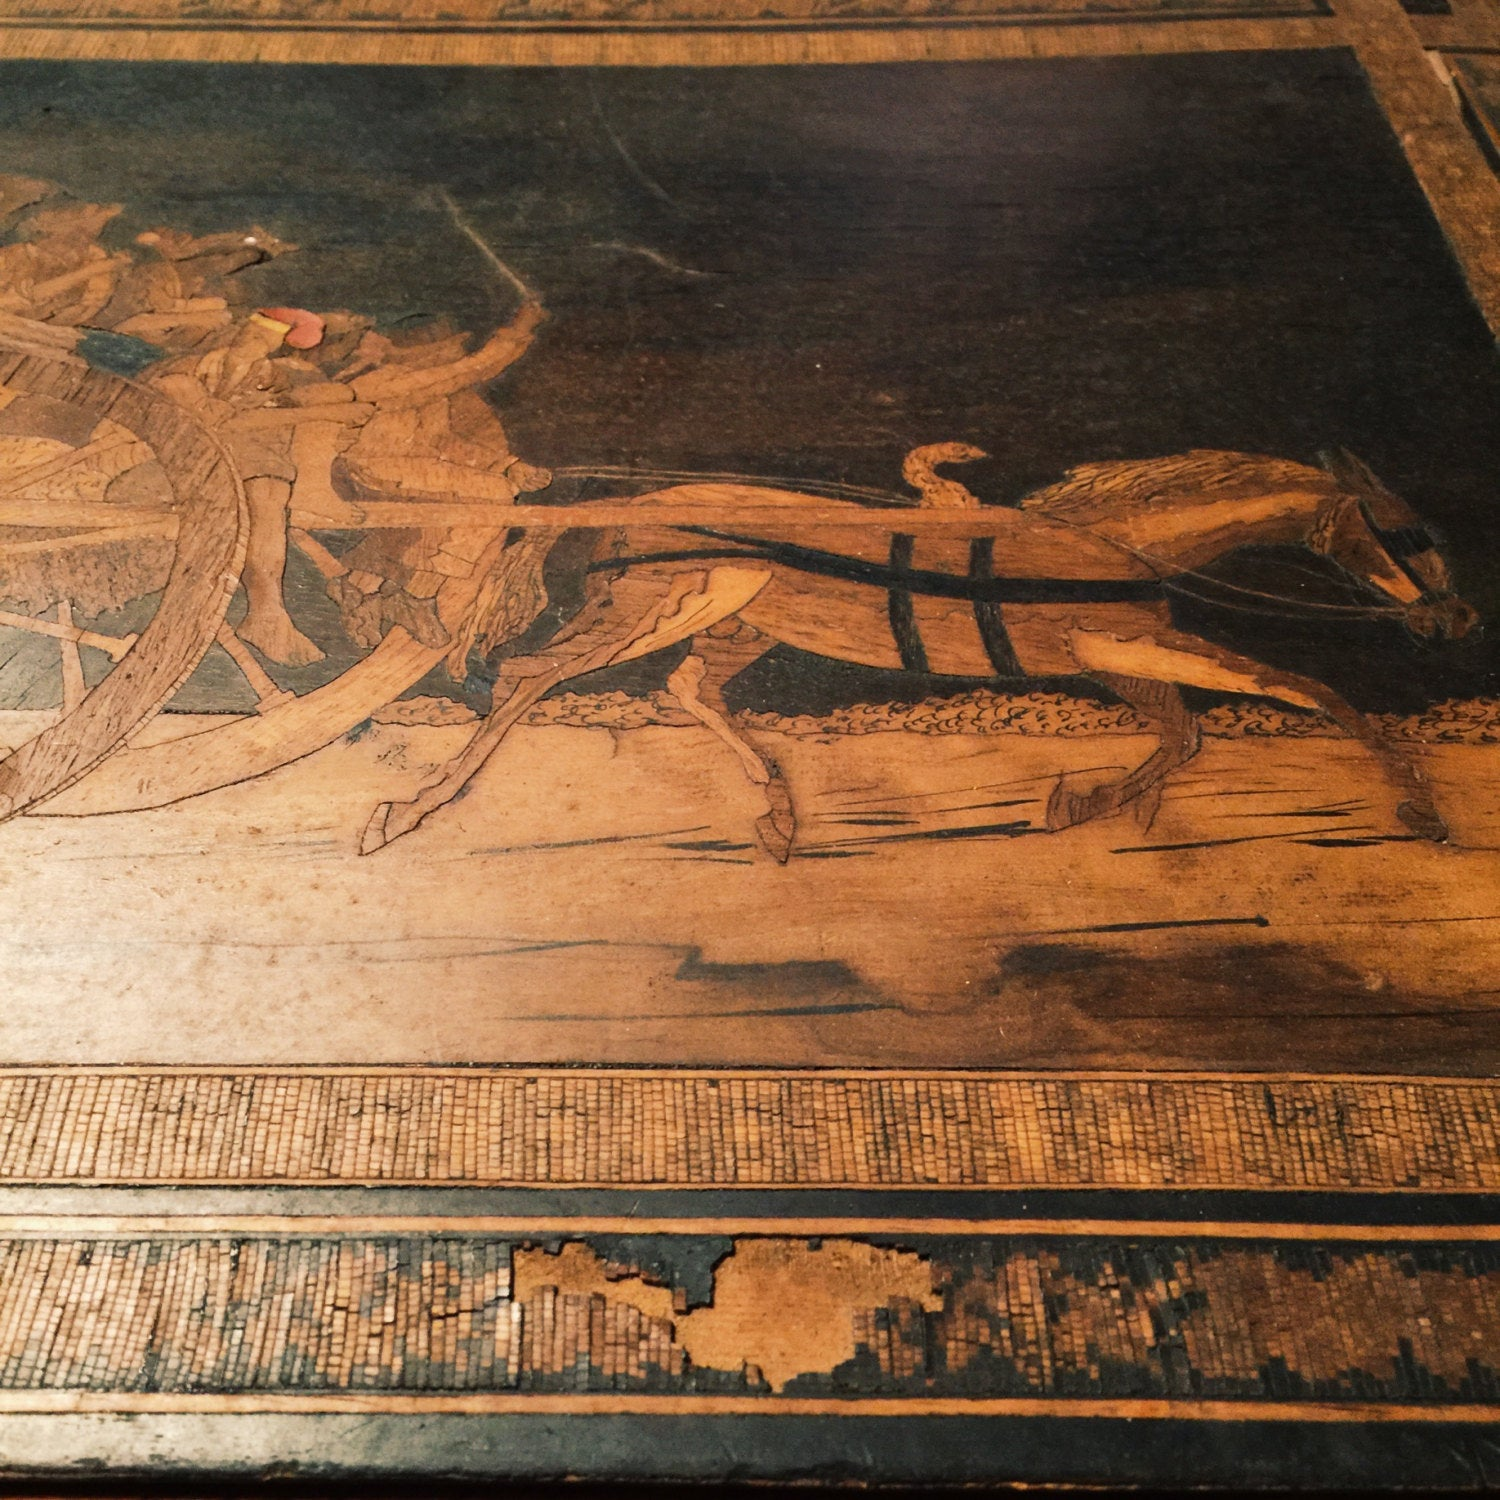 Pyrography Wood Burning of Carriage, Horse, Mob and Whip - Pyrography Art - Flemish? - Mystery artist - Turn of the Century - Antique